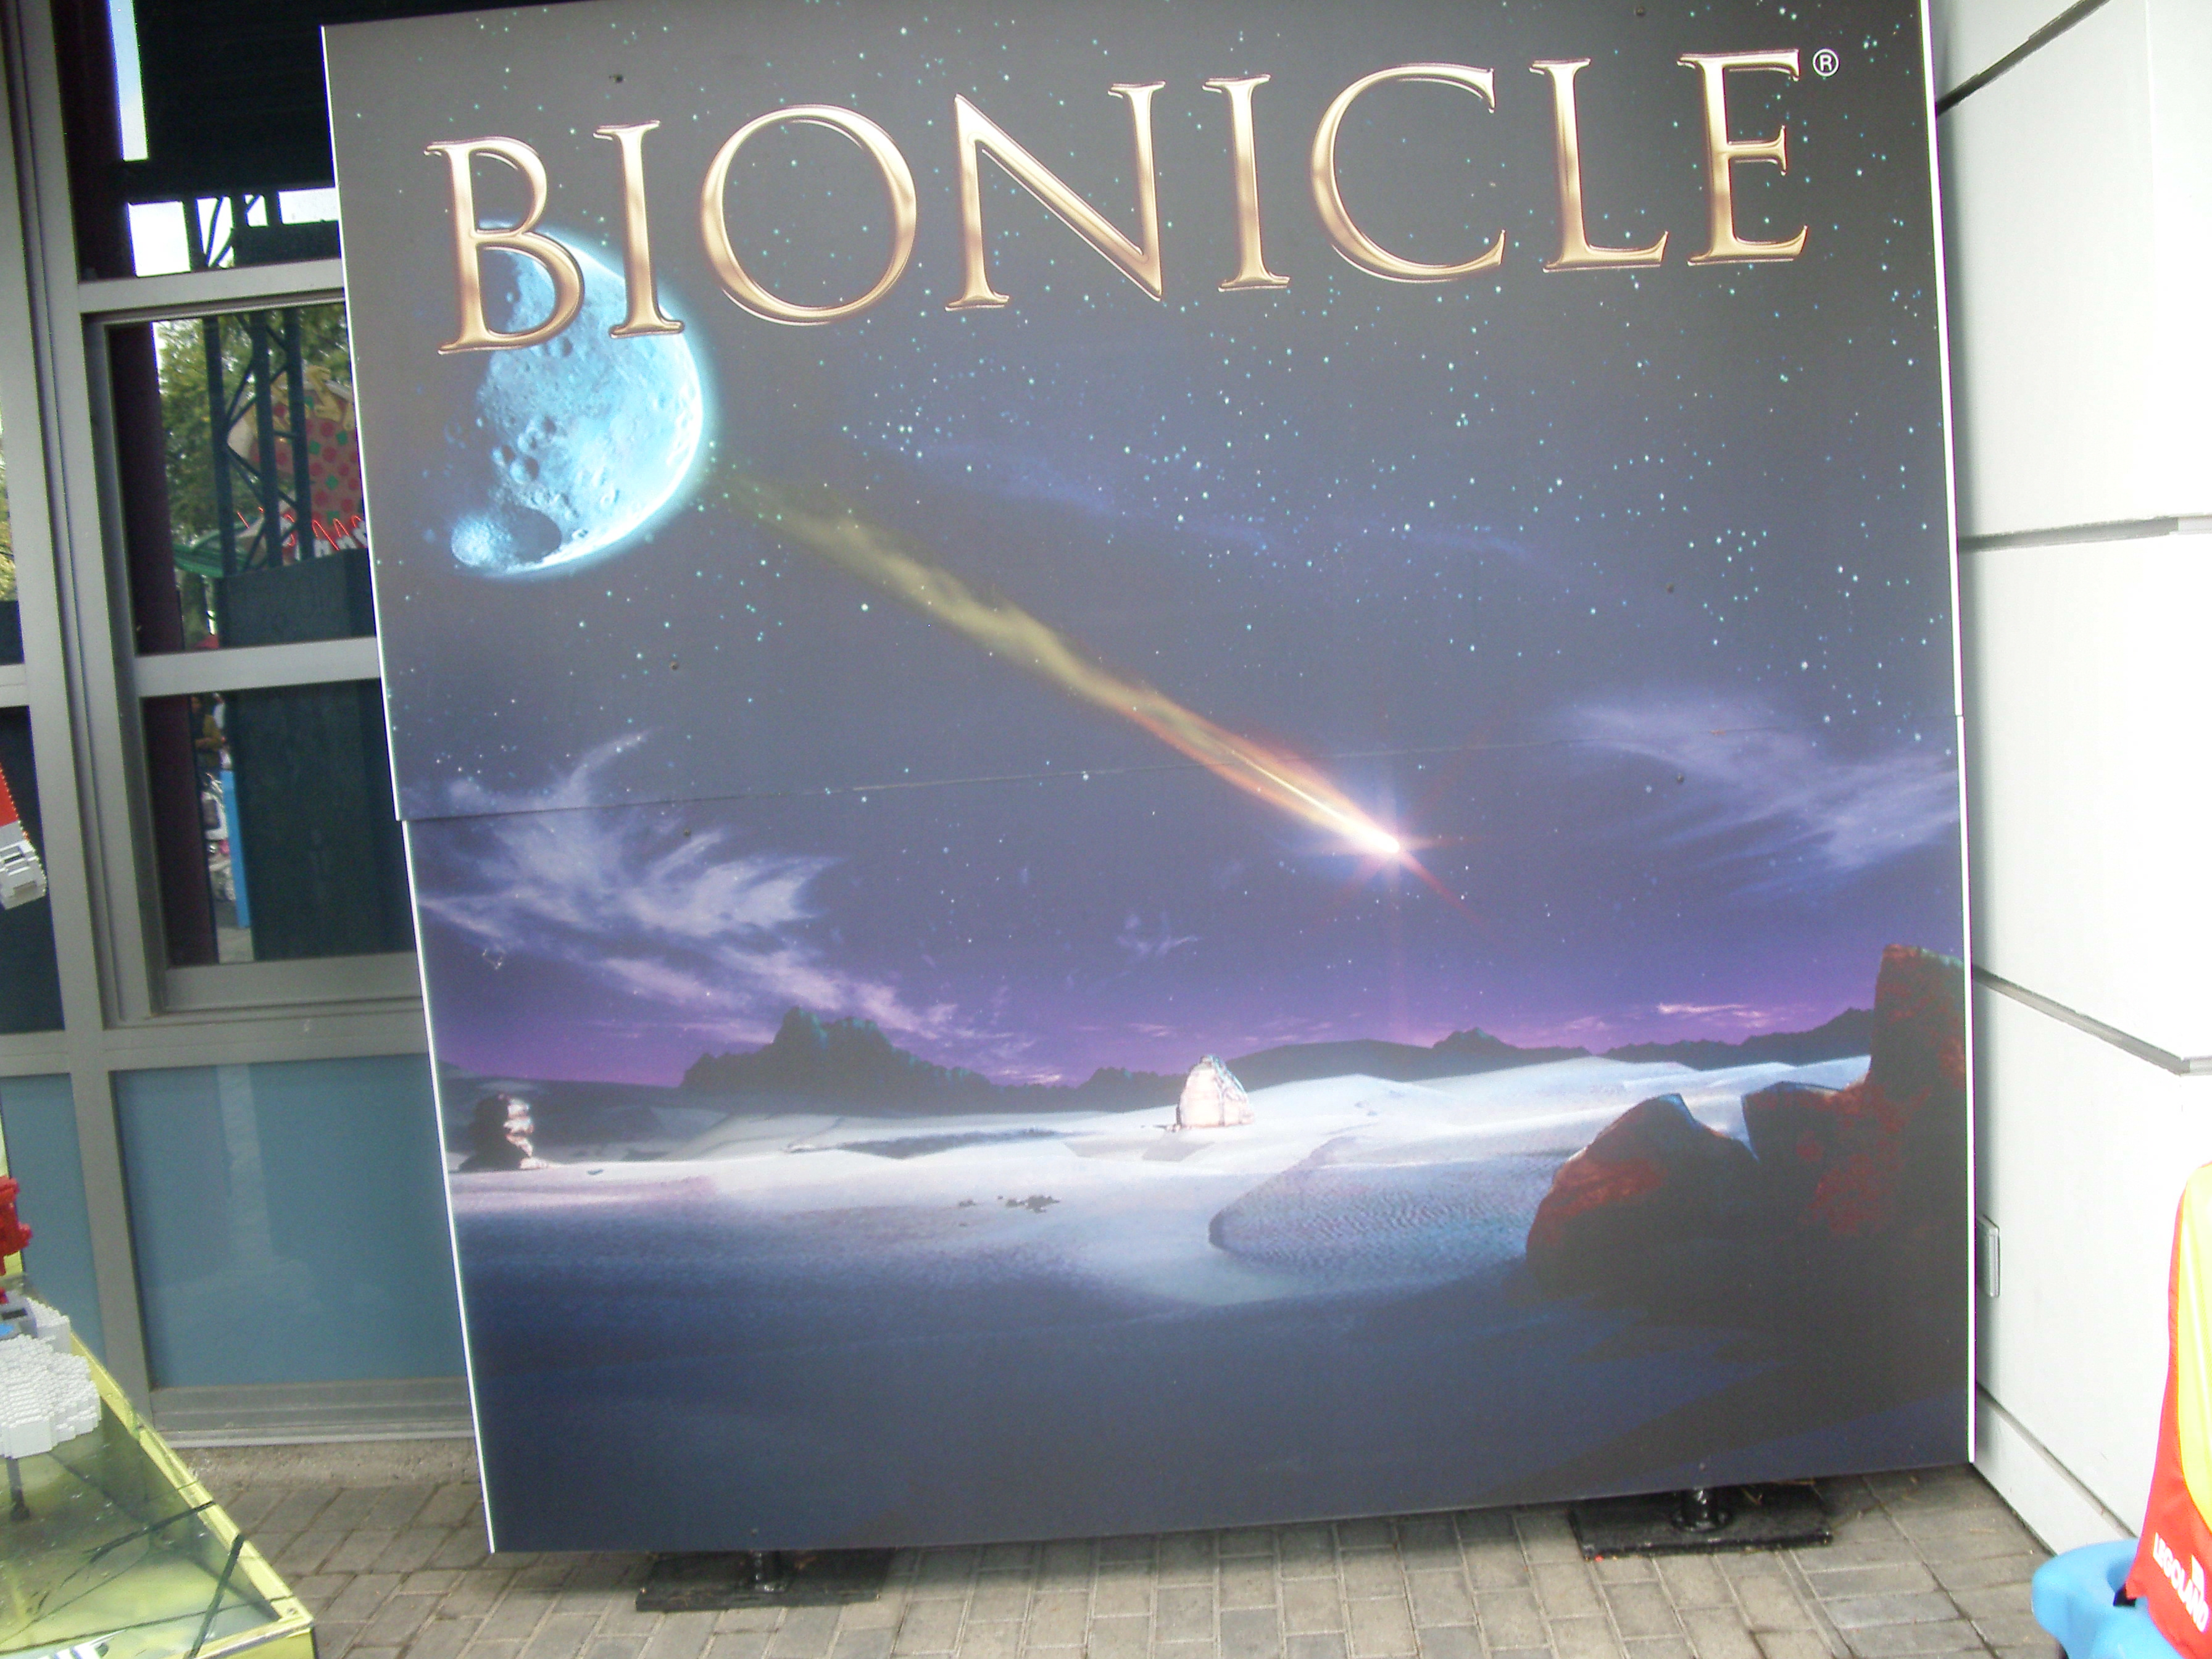 09_bionicle_room_01.jpg